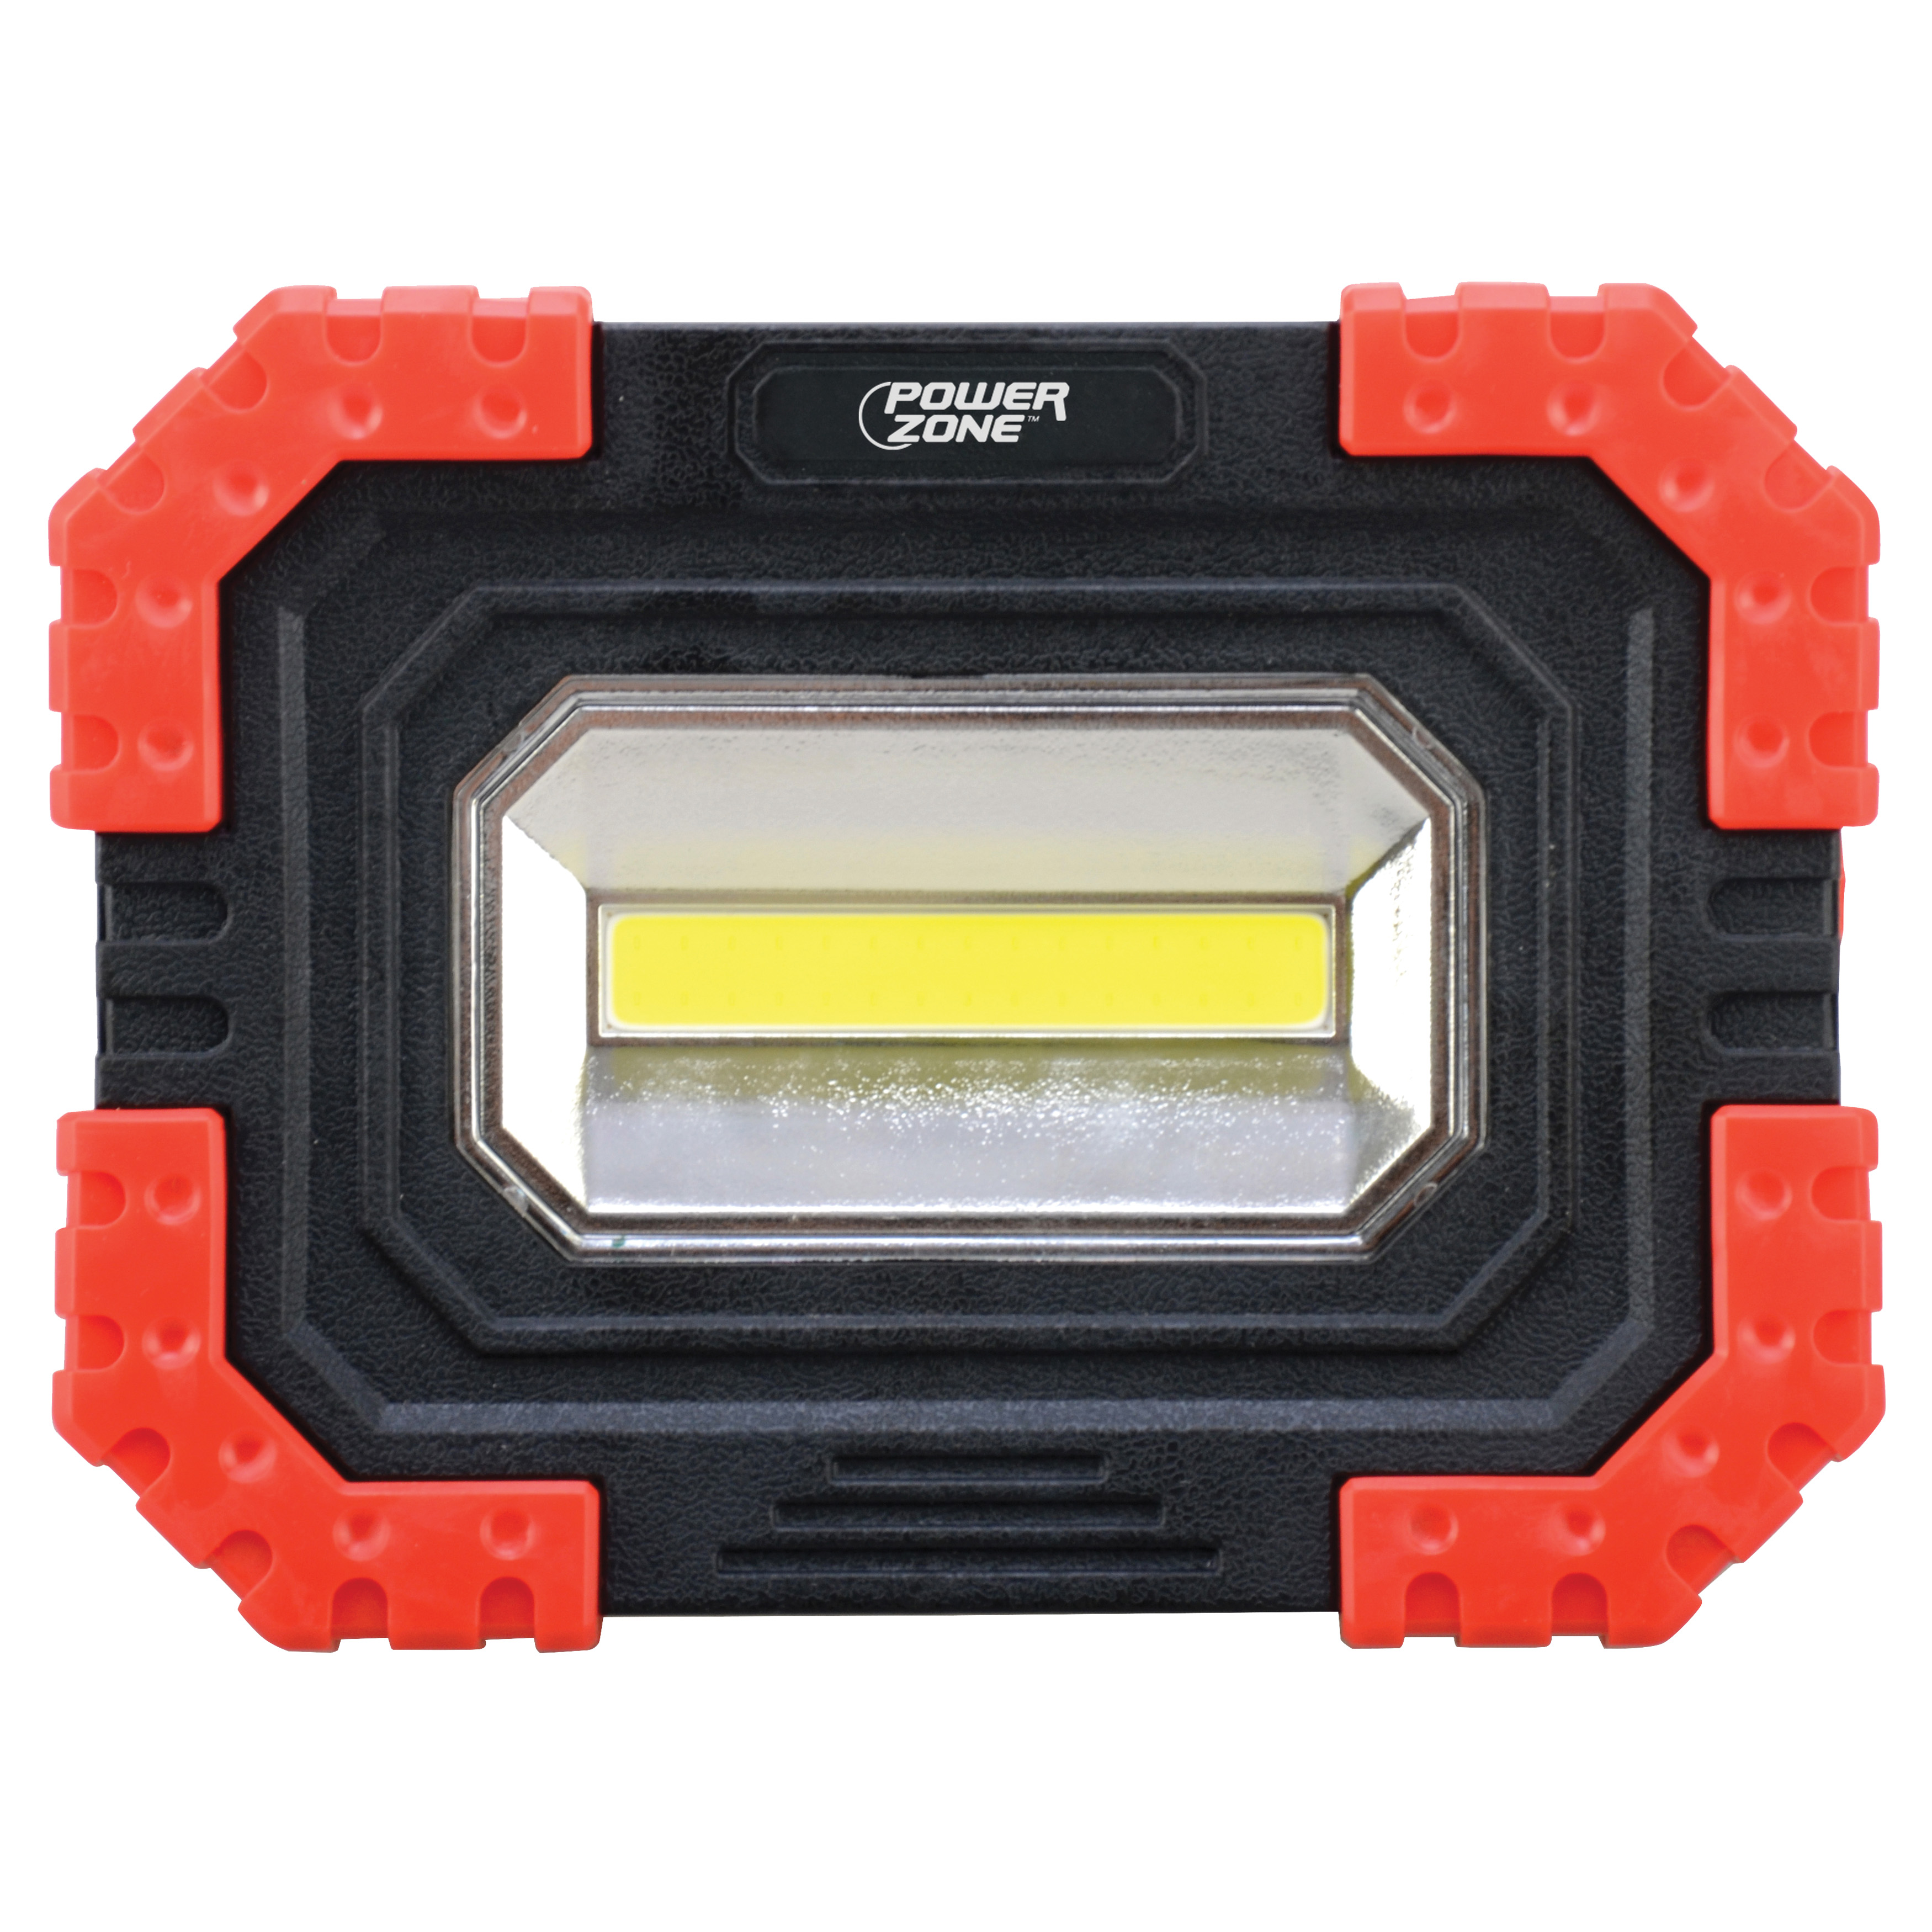 Picture of PowerZone 12241 Work Light, 10 W, LED Lamp, 1000 Lumens